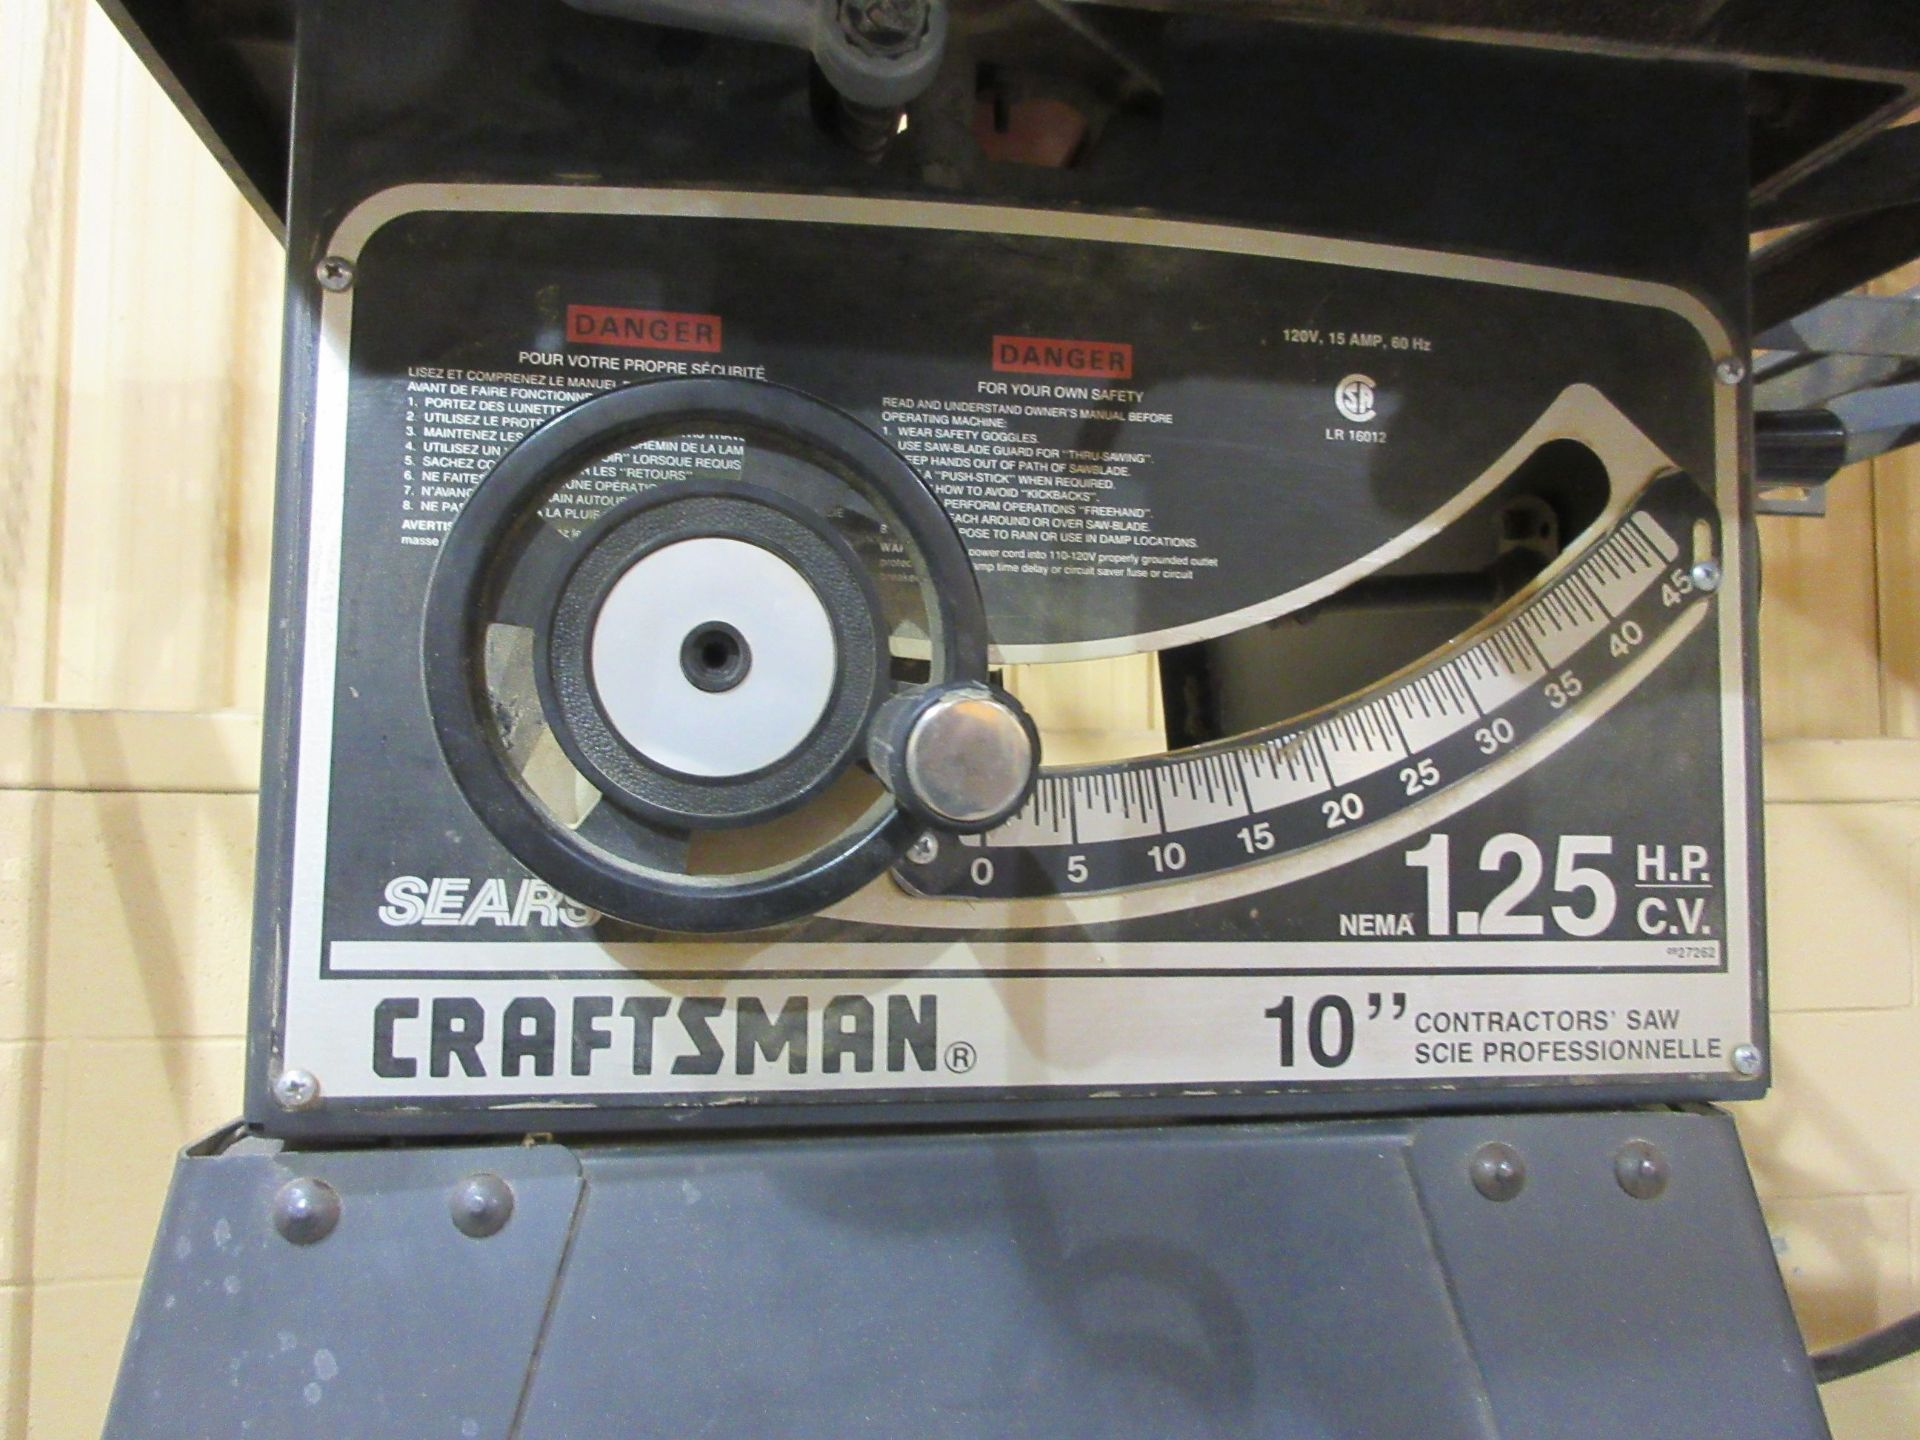 Lot 71 - CRAFSTMAN (10) table saw (mod:113-2726 20C)